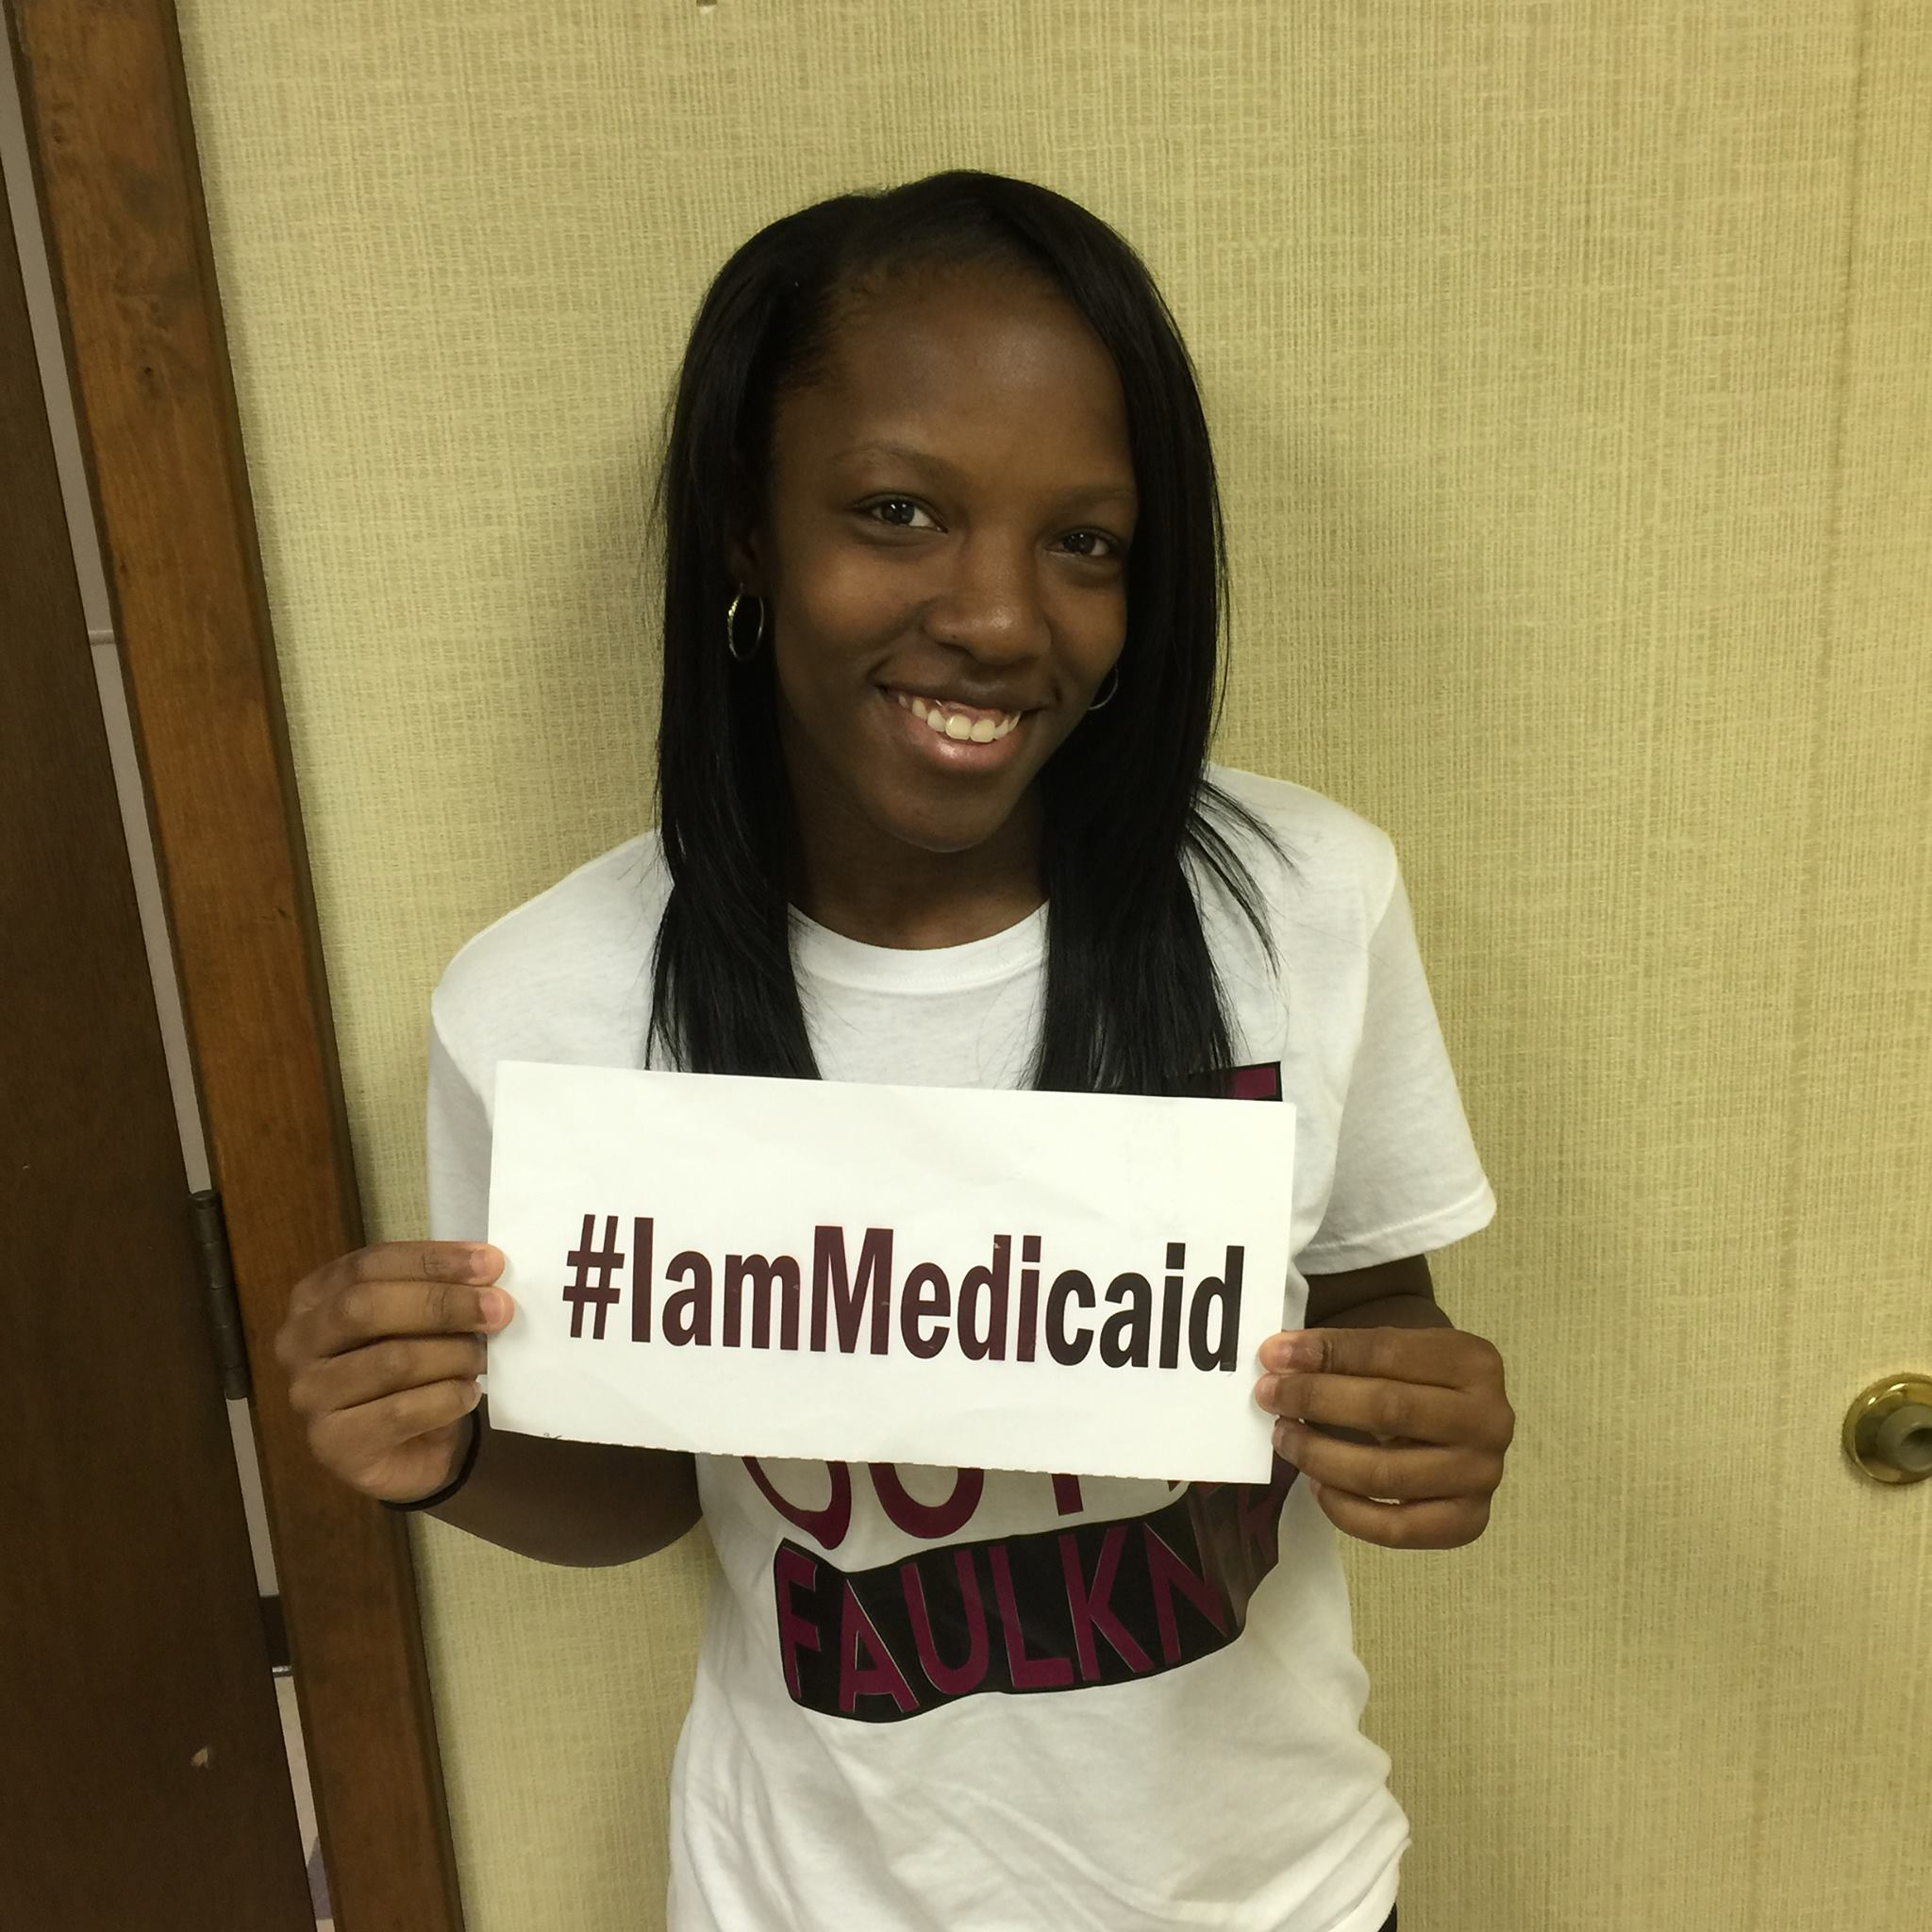 I graduate from college this week and I have private insurance but Medicaid provided my care for 18 years. Thanks Medicaid! ‪#‎IamMedicaid